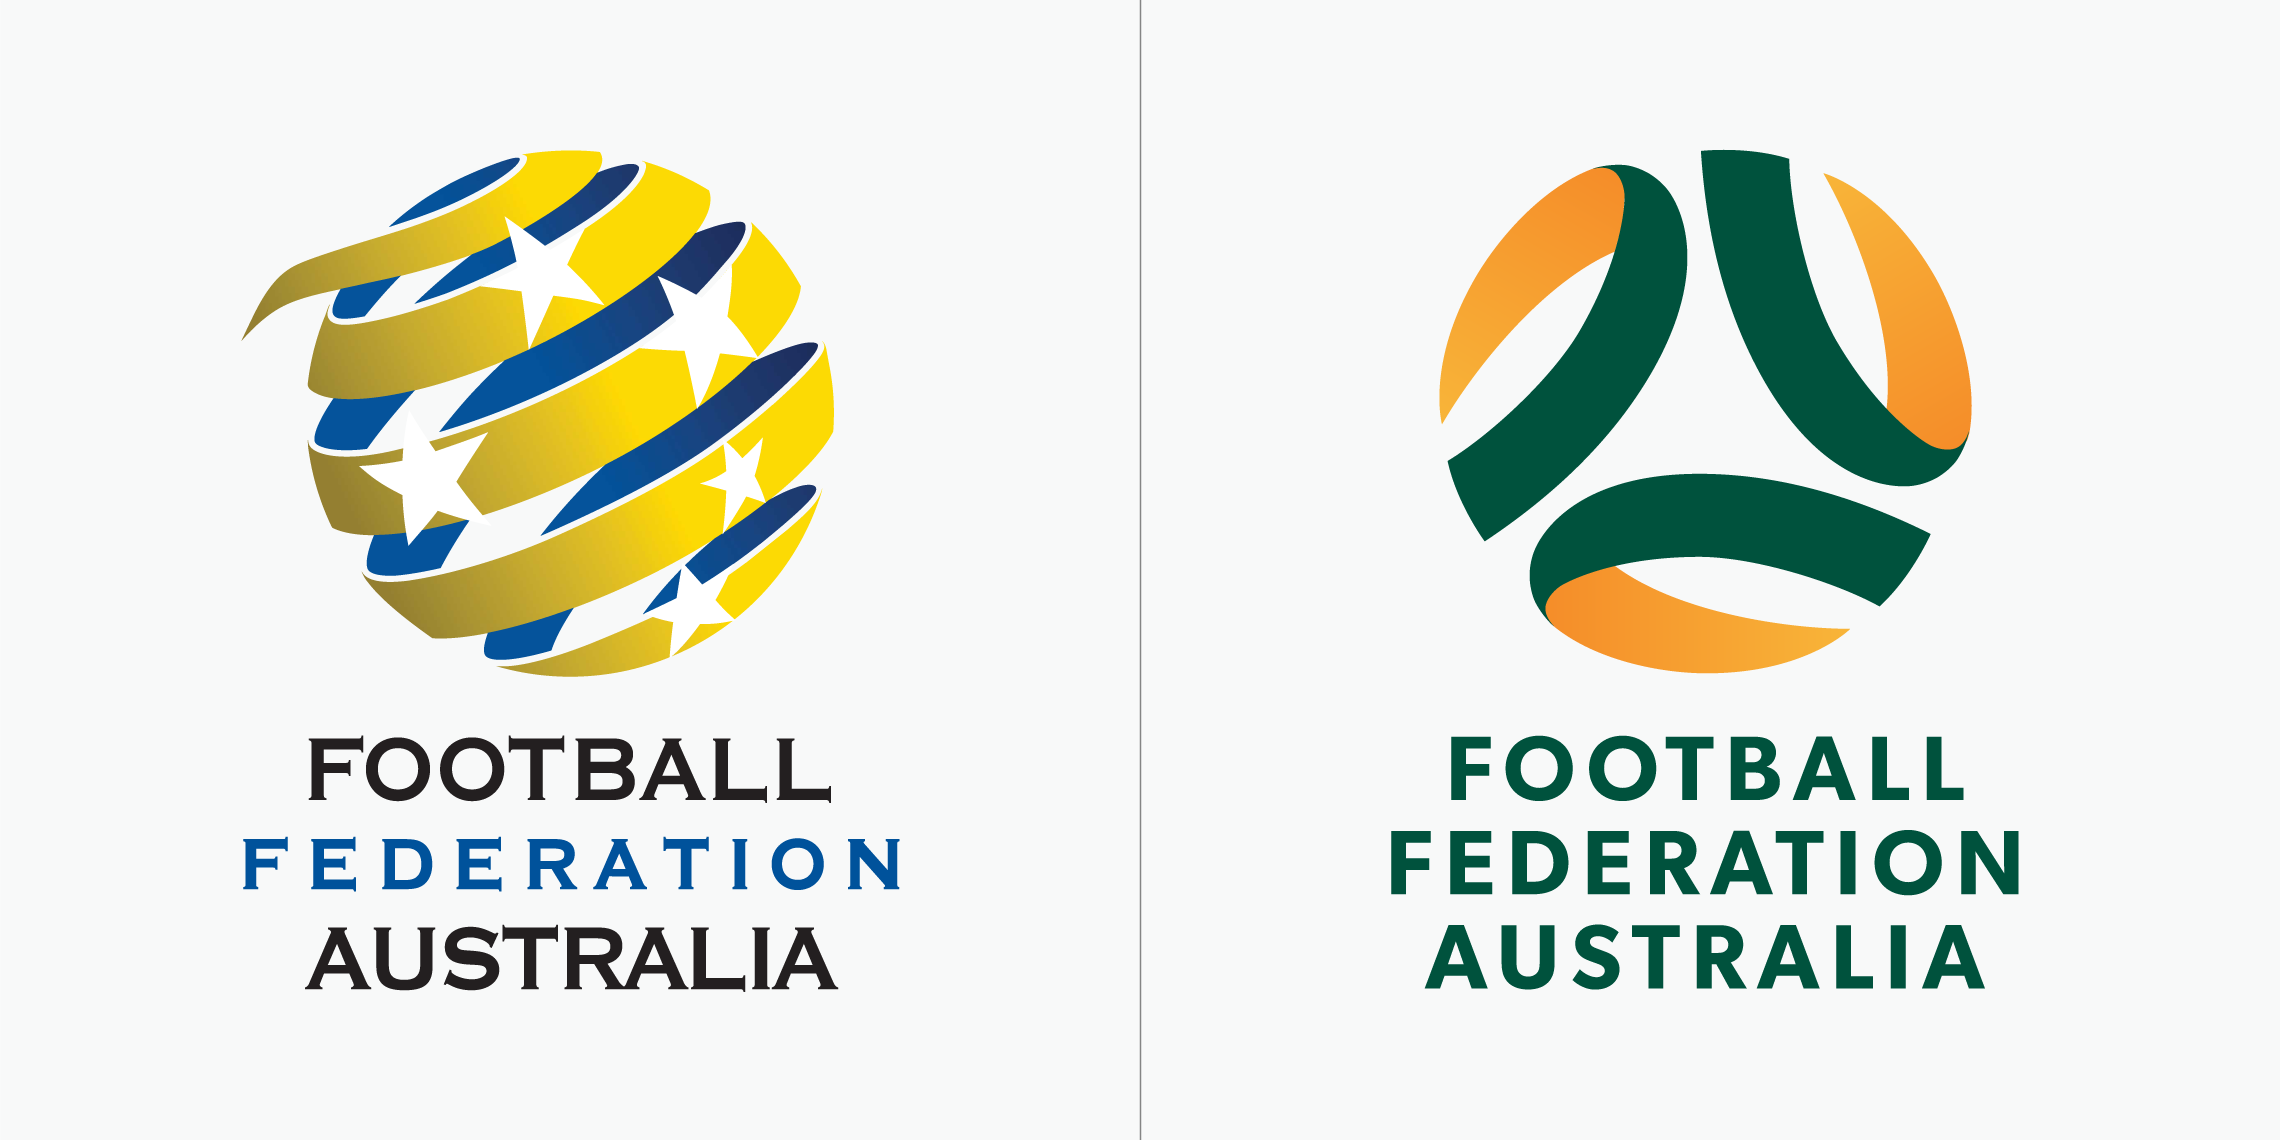 Football Federation Australia logo before and after